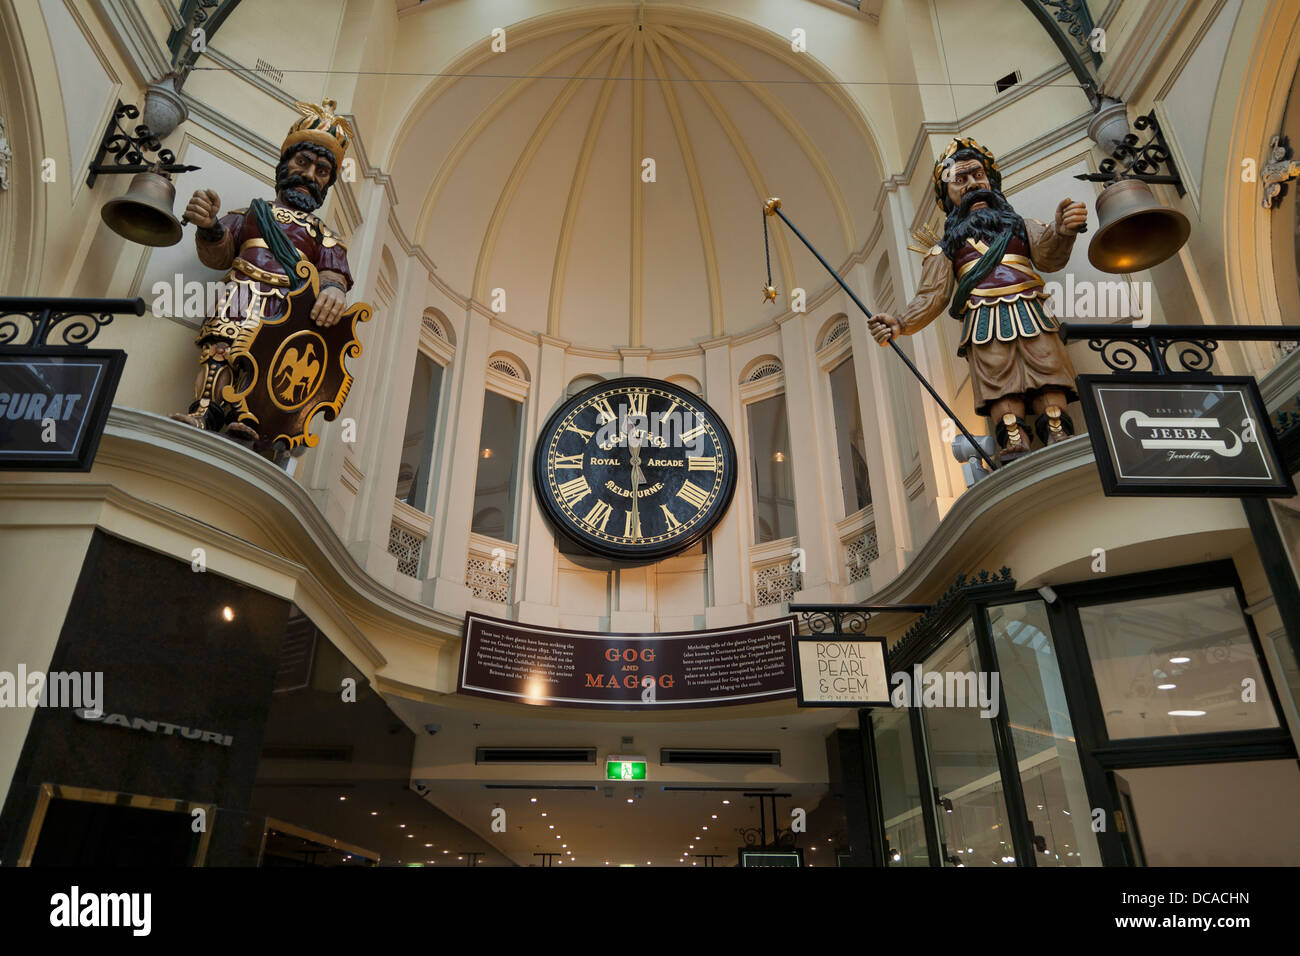 Interior of the Royal Arcade. Mythical figures Gog and Magog with clock. Melbourne, Victoria. Australia. - Stock Image